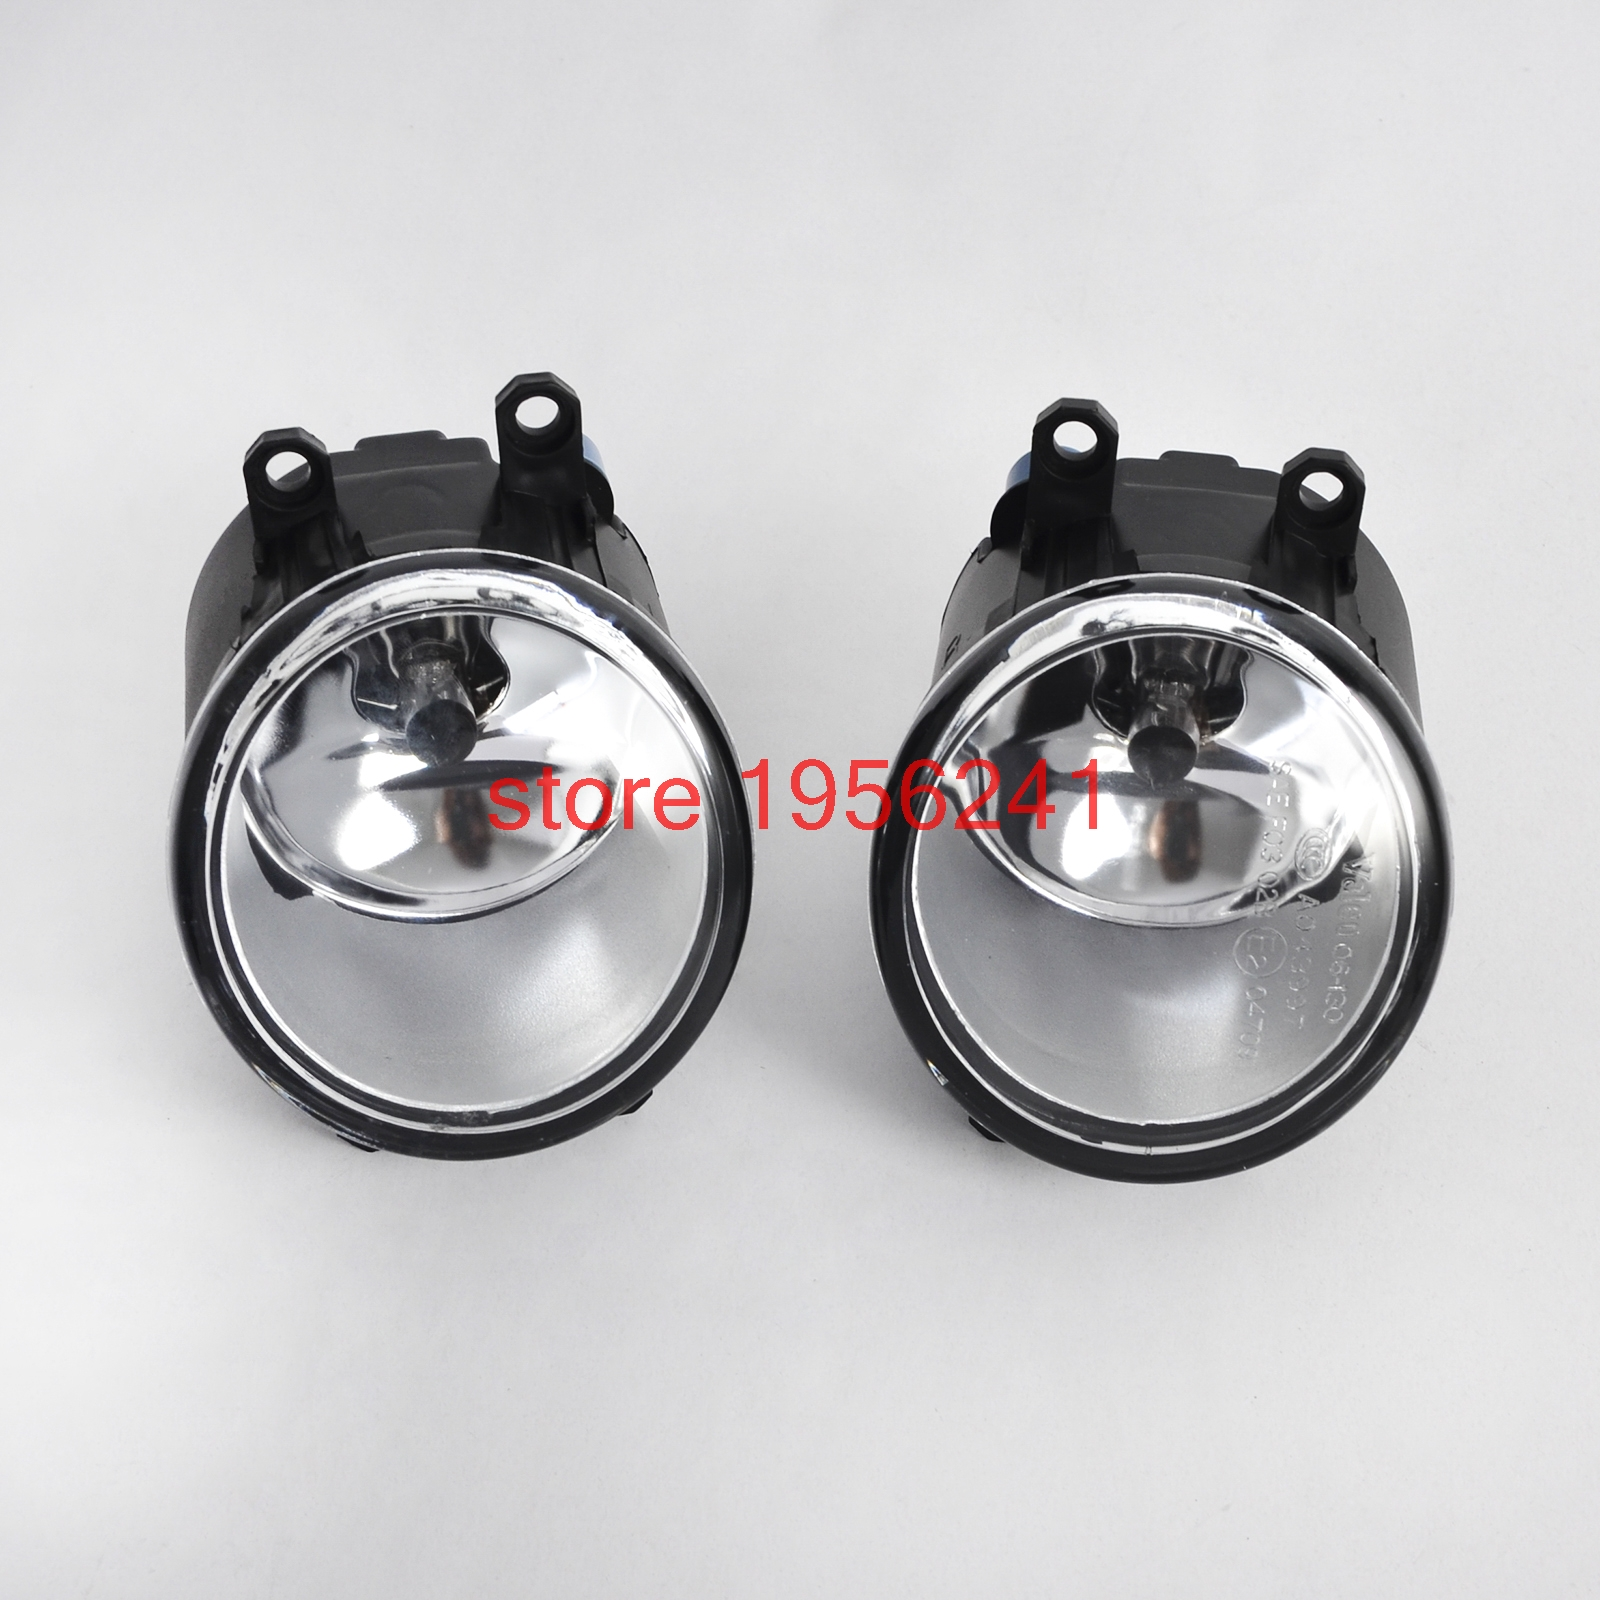 H2cnc 1 Pair Front Bumper Fog Light Clear Switch Wiring Harness Cnc For Toyota Yaris S Base 2006 2011 Sedan 4 Door In Car Assembly From Automobiles